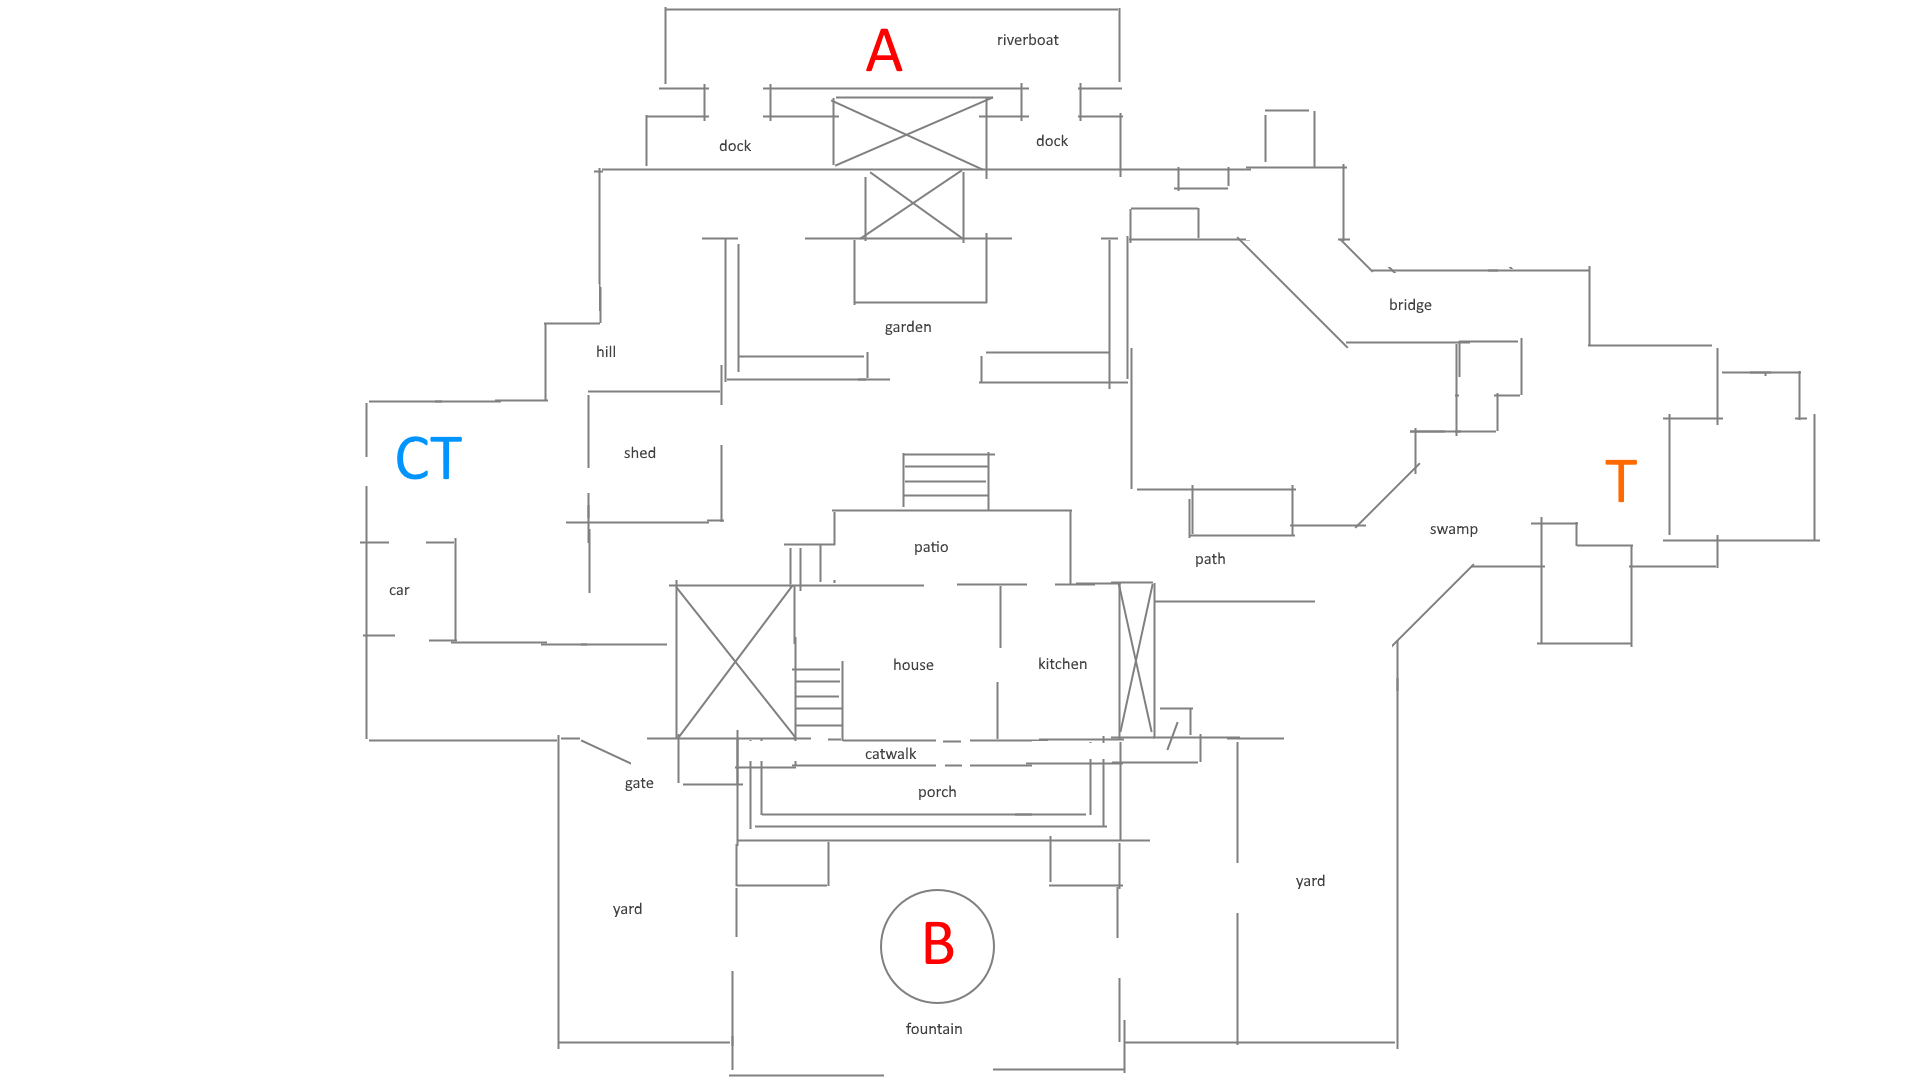 riverboat_preliminary_layout.png